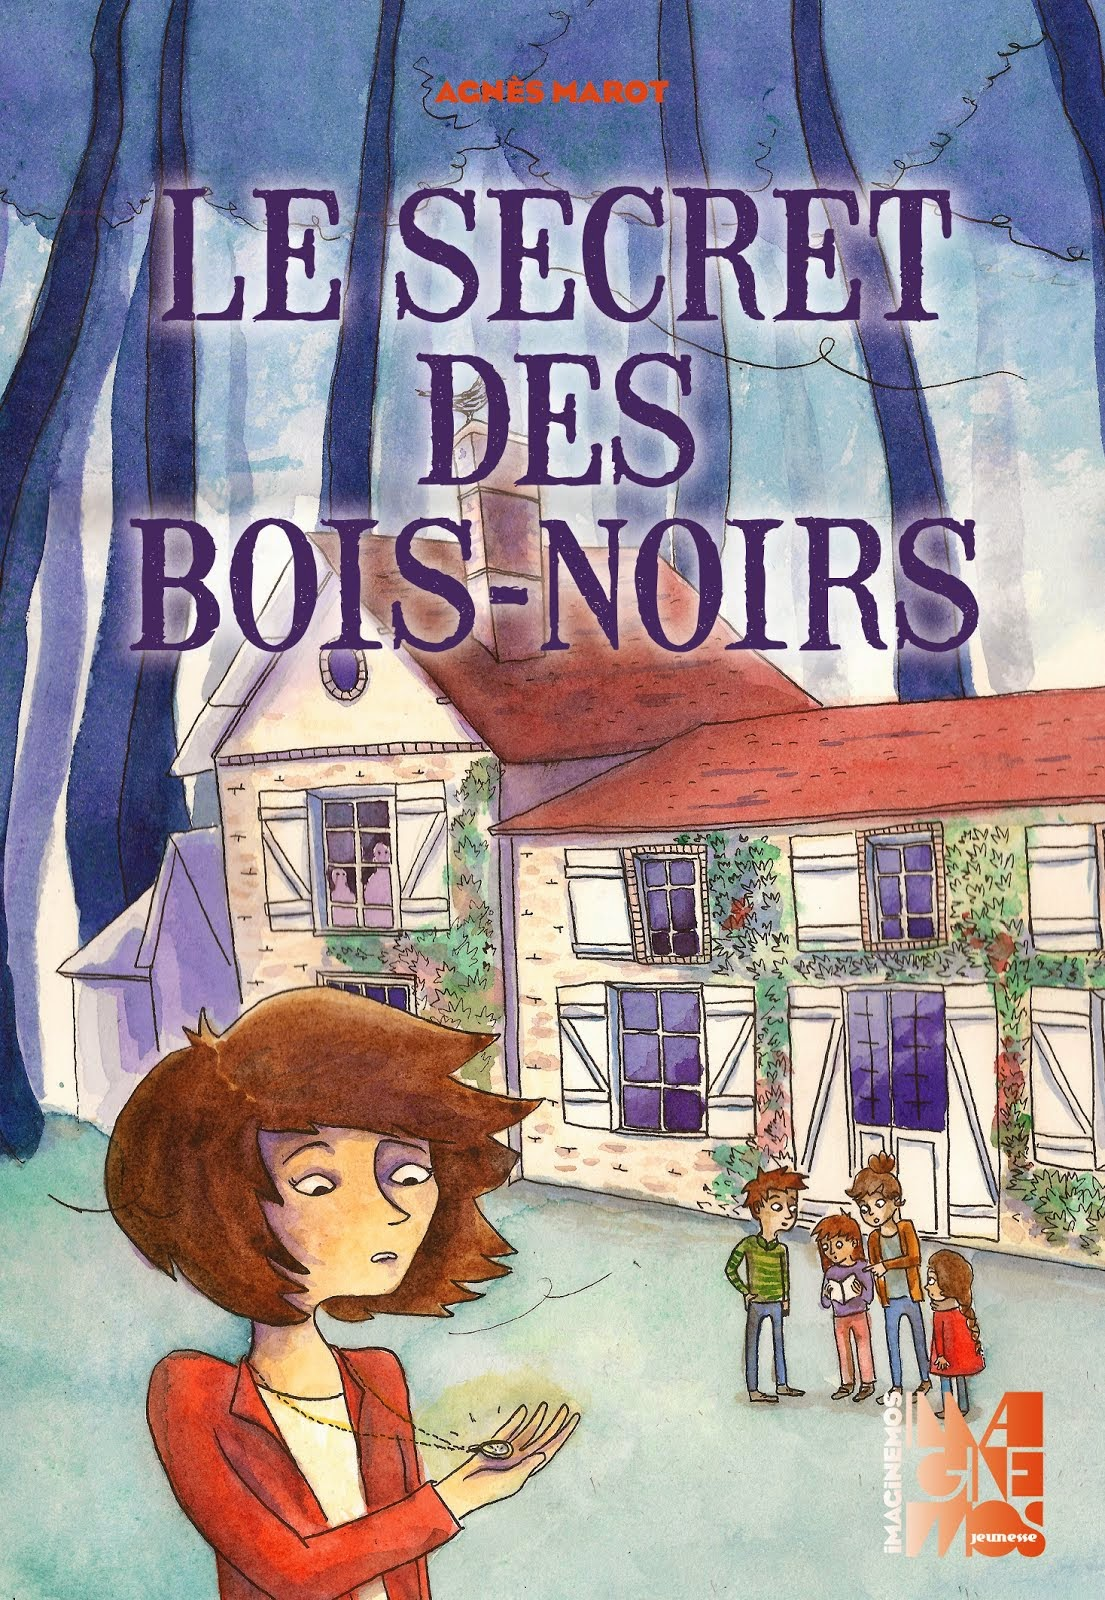 Le Secret des Bois-Noirs